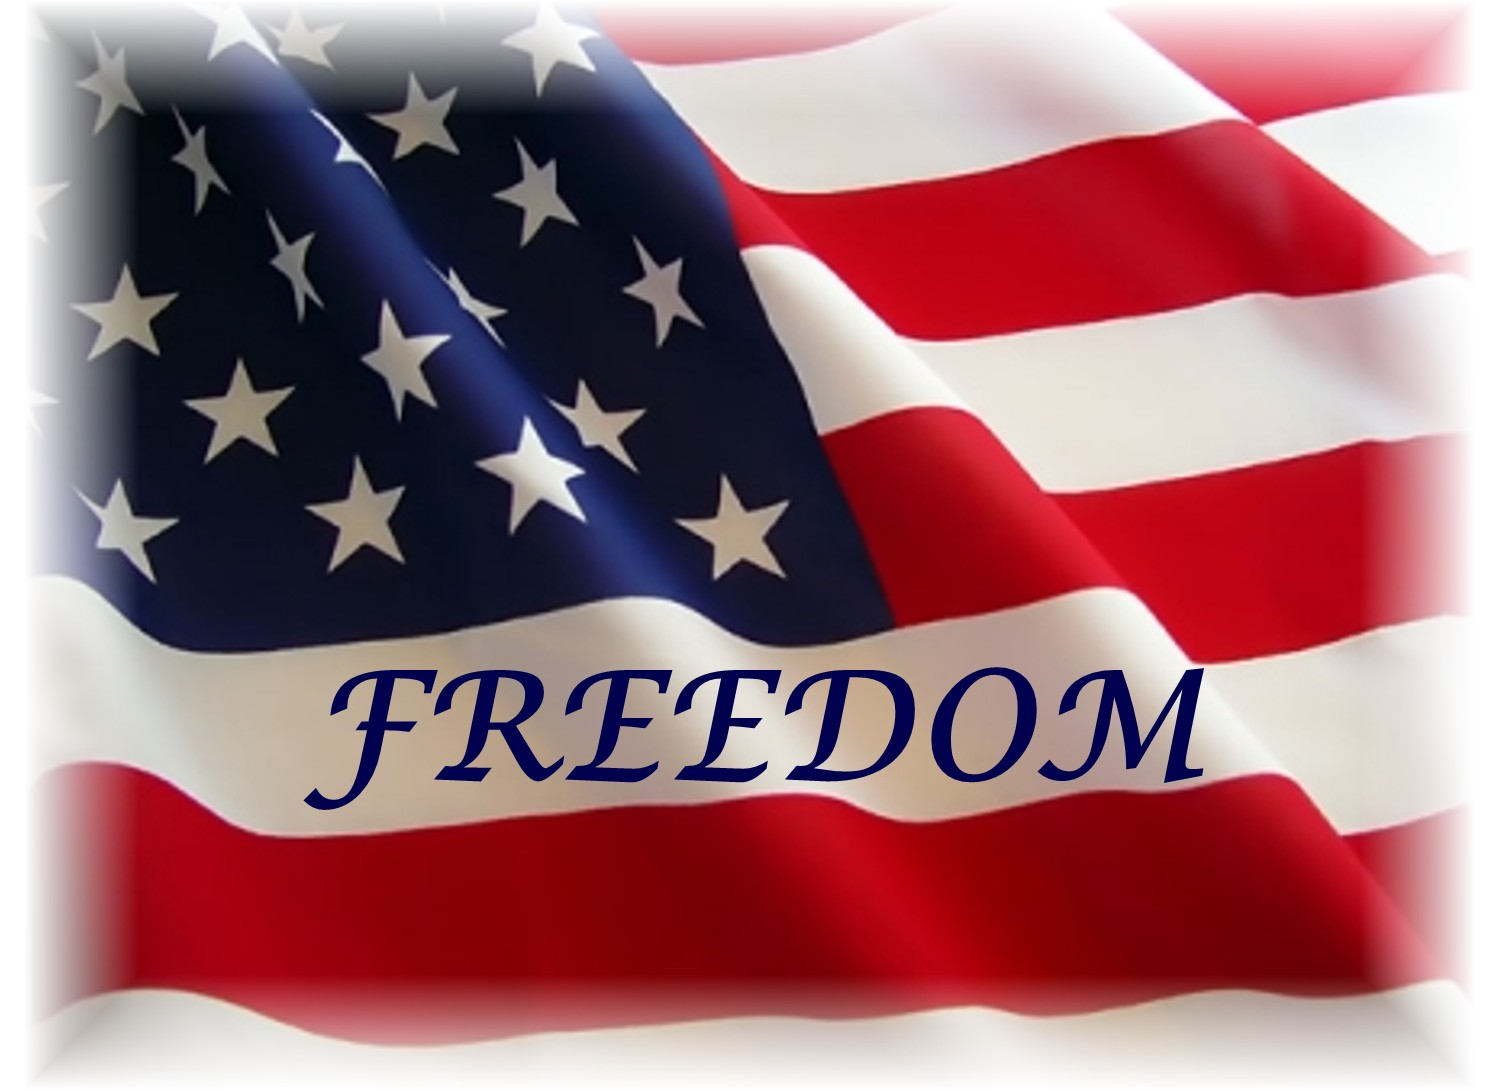 Freedom Picture The Paradox Of American Freedom Sierra Leone News This